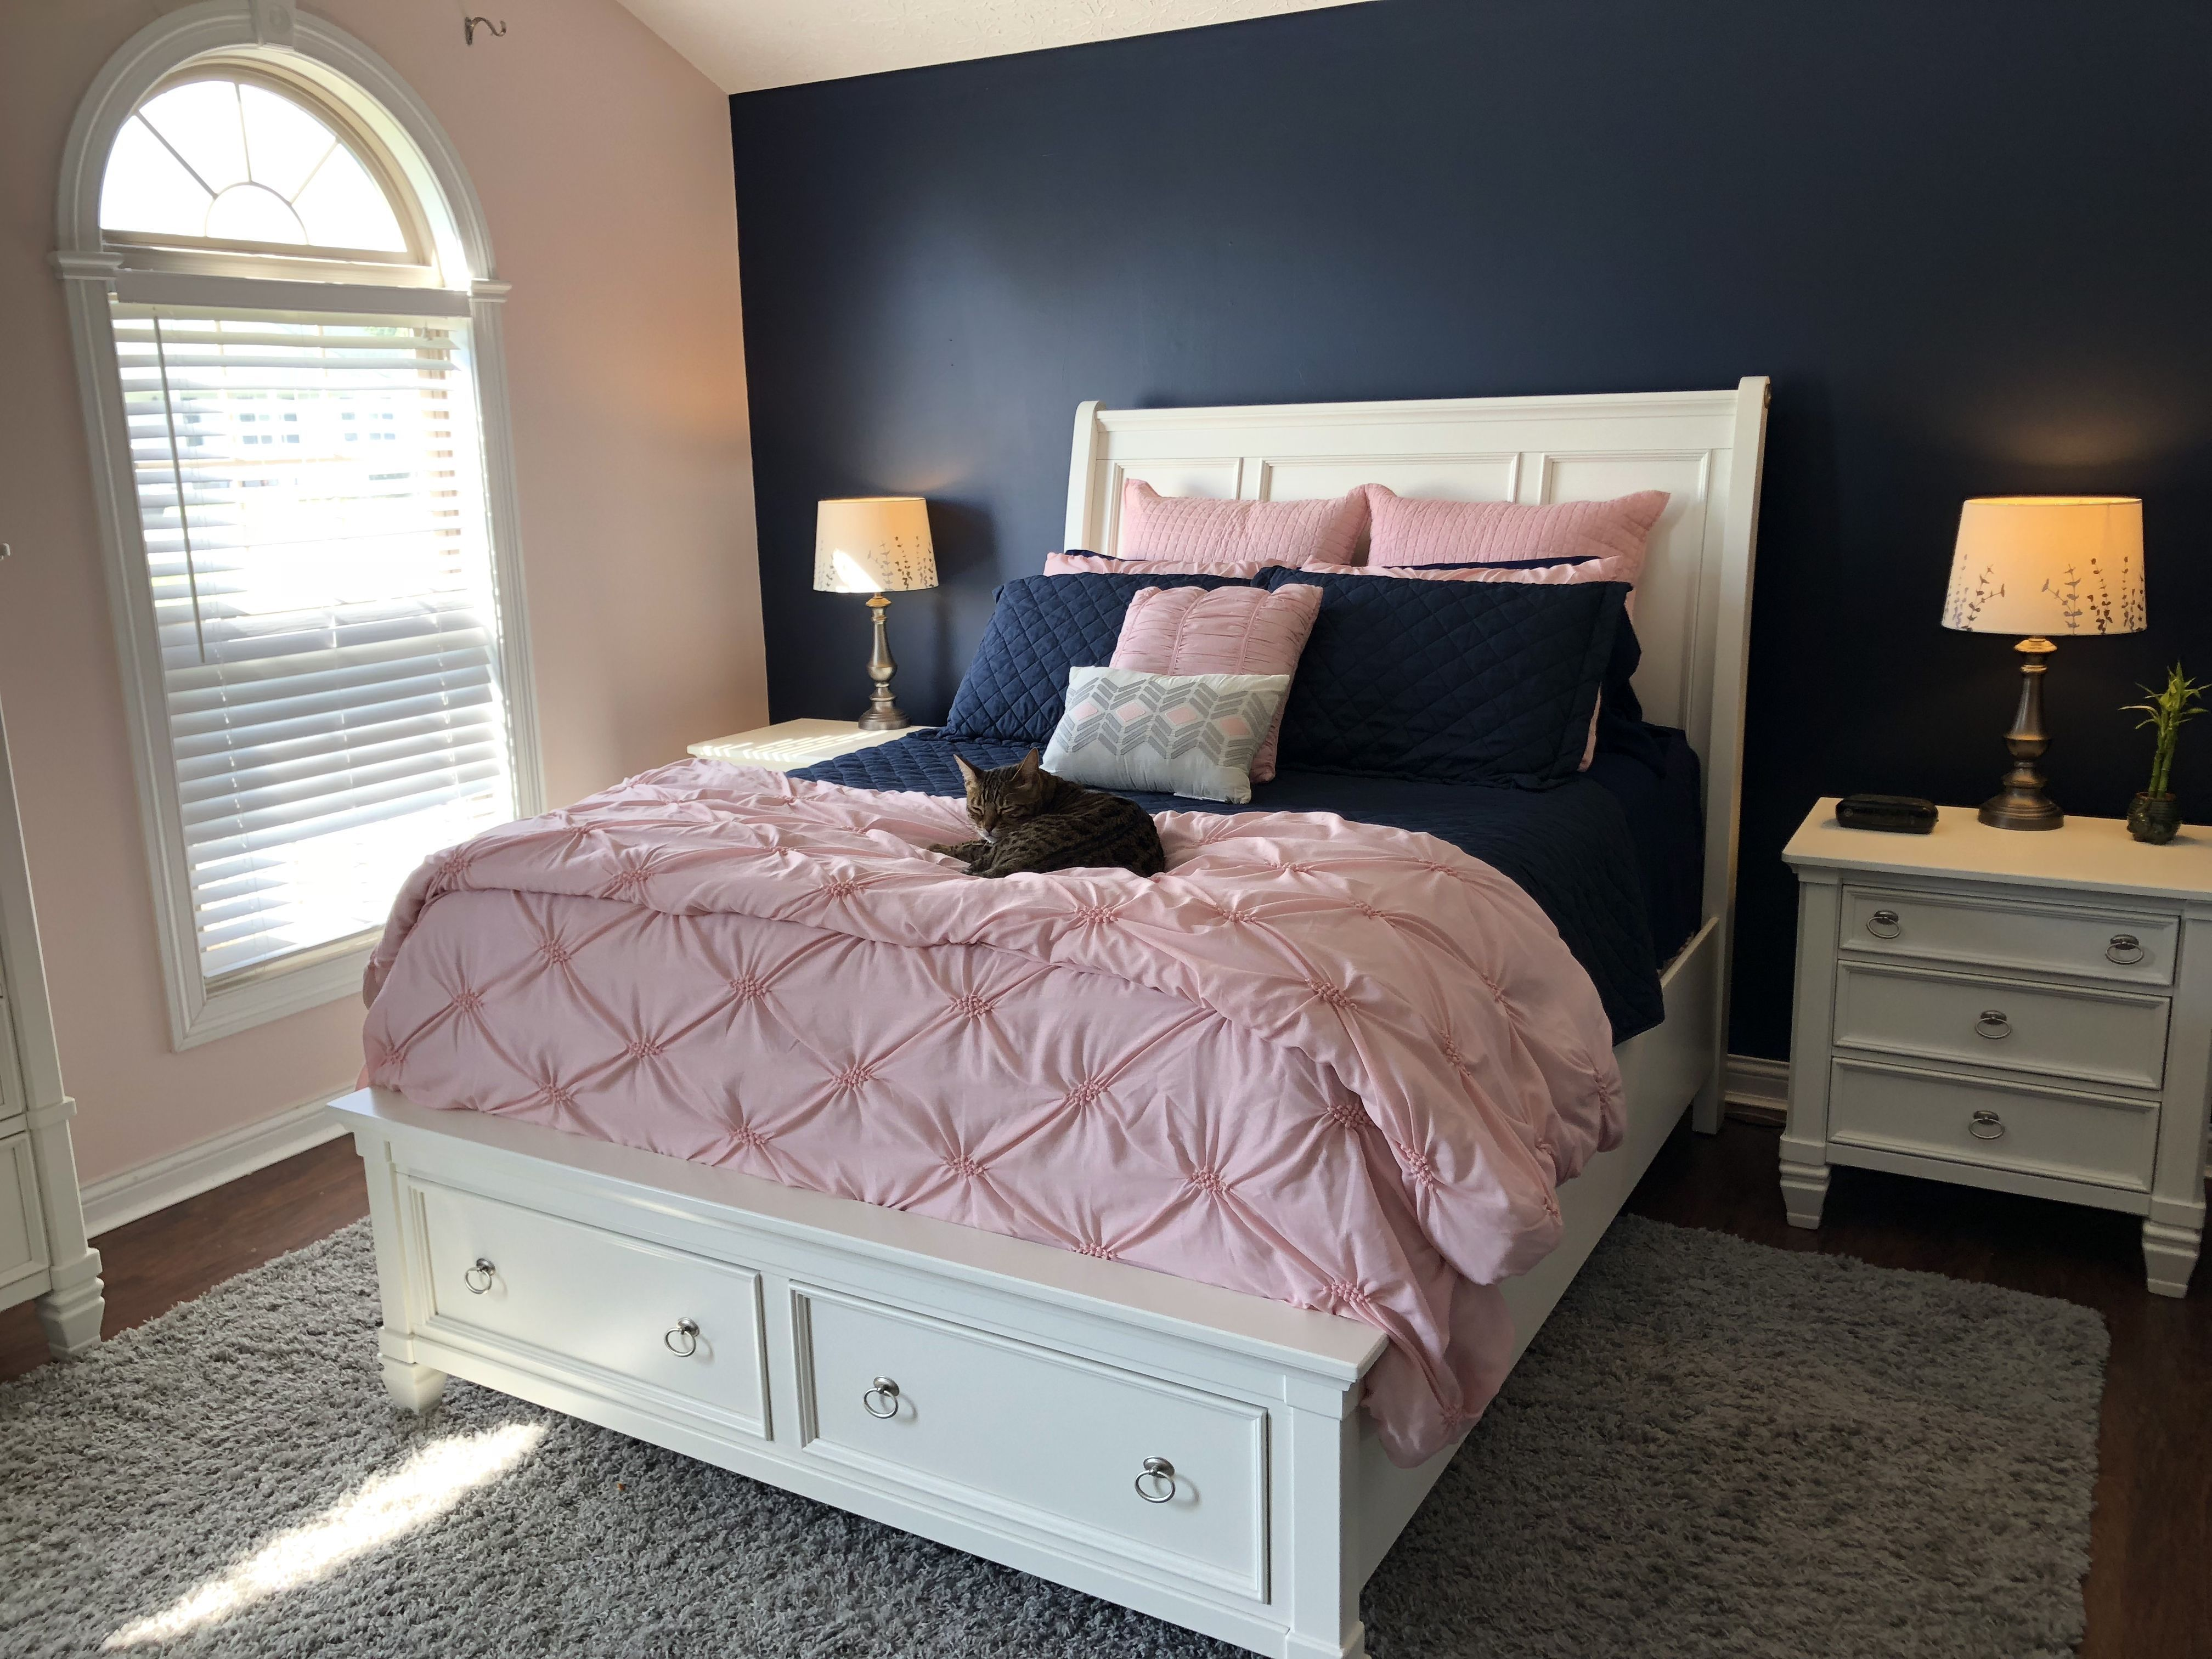 Blush Pink And Navy Master Bedroom 720364902877659089 With Images Navy Master Bedroom Master Bedrooms Decor Pink Master Bedroom